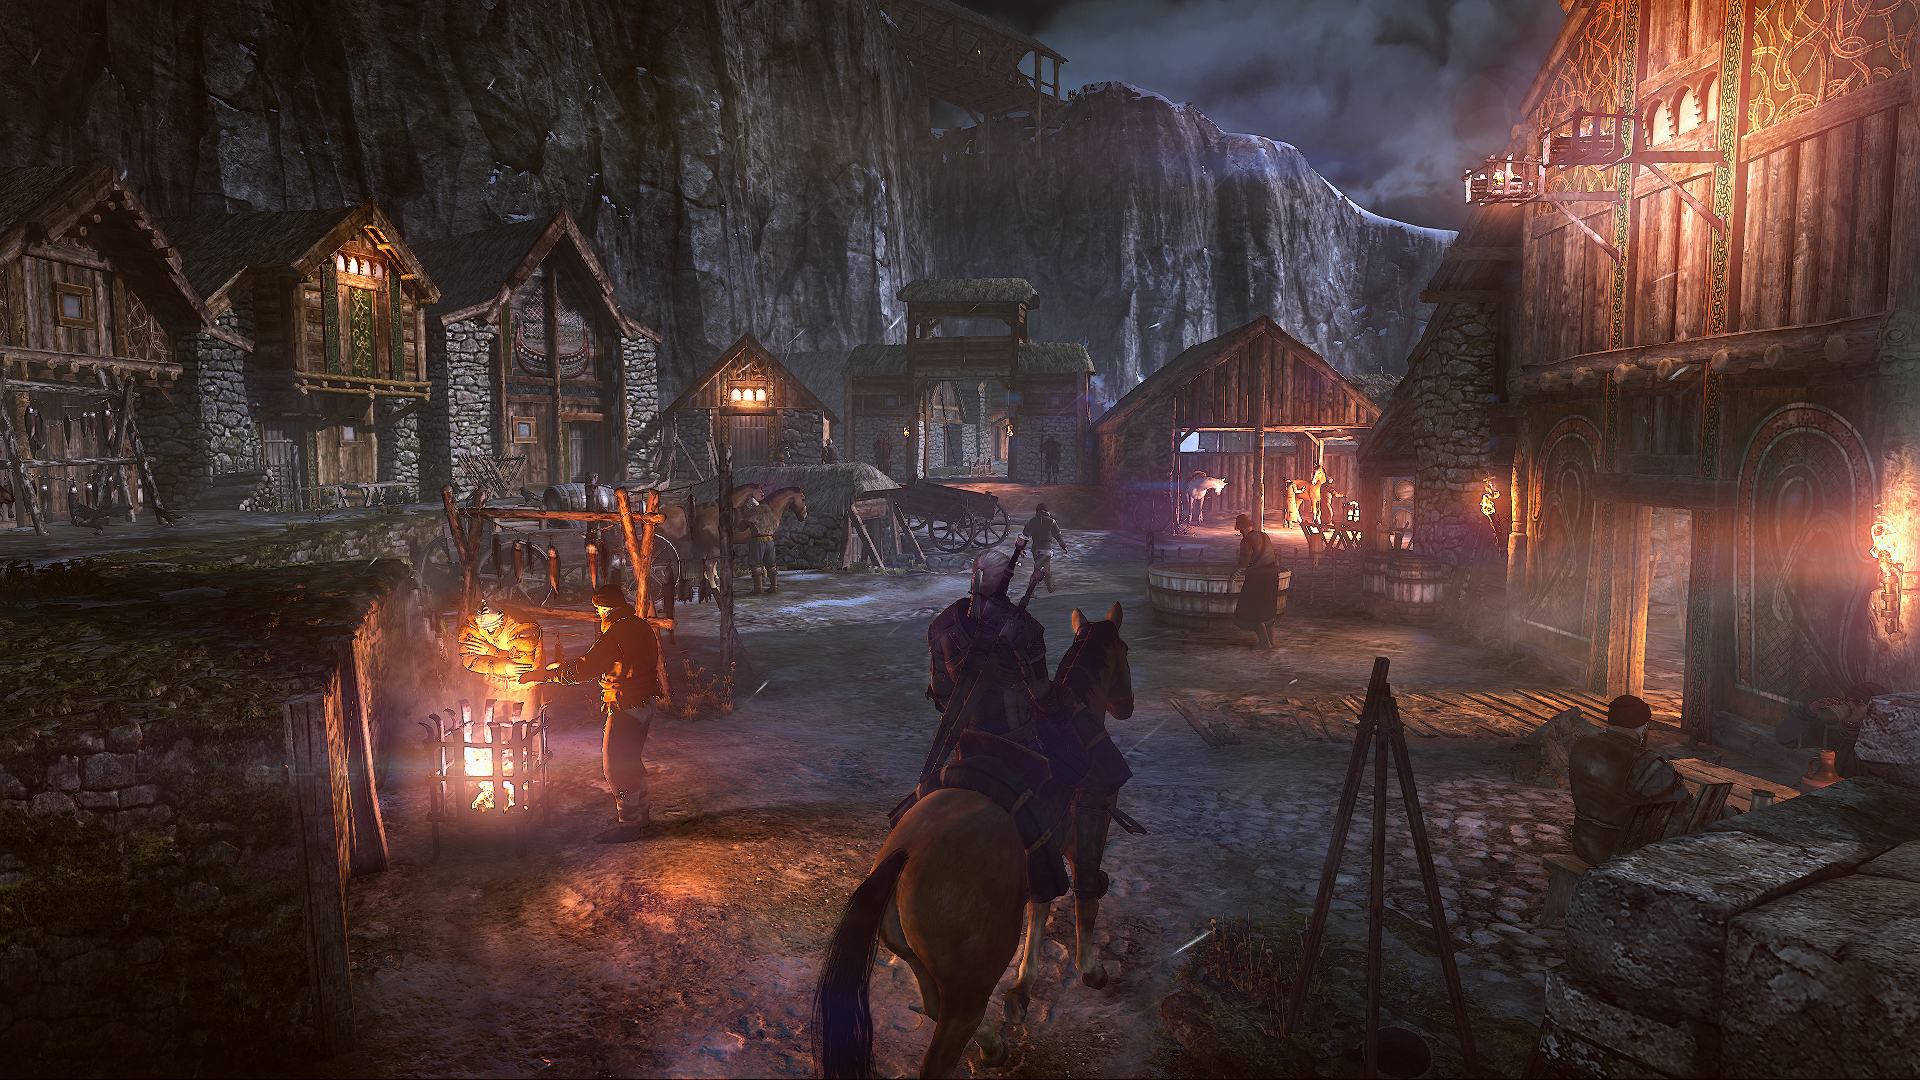 Solo Geralt de Rivia siendo asombroso en este trailer de The Witcher 3: Wild Hunt [Vídeo]